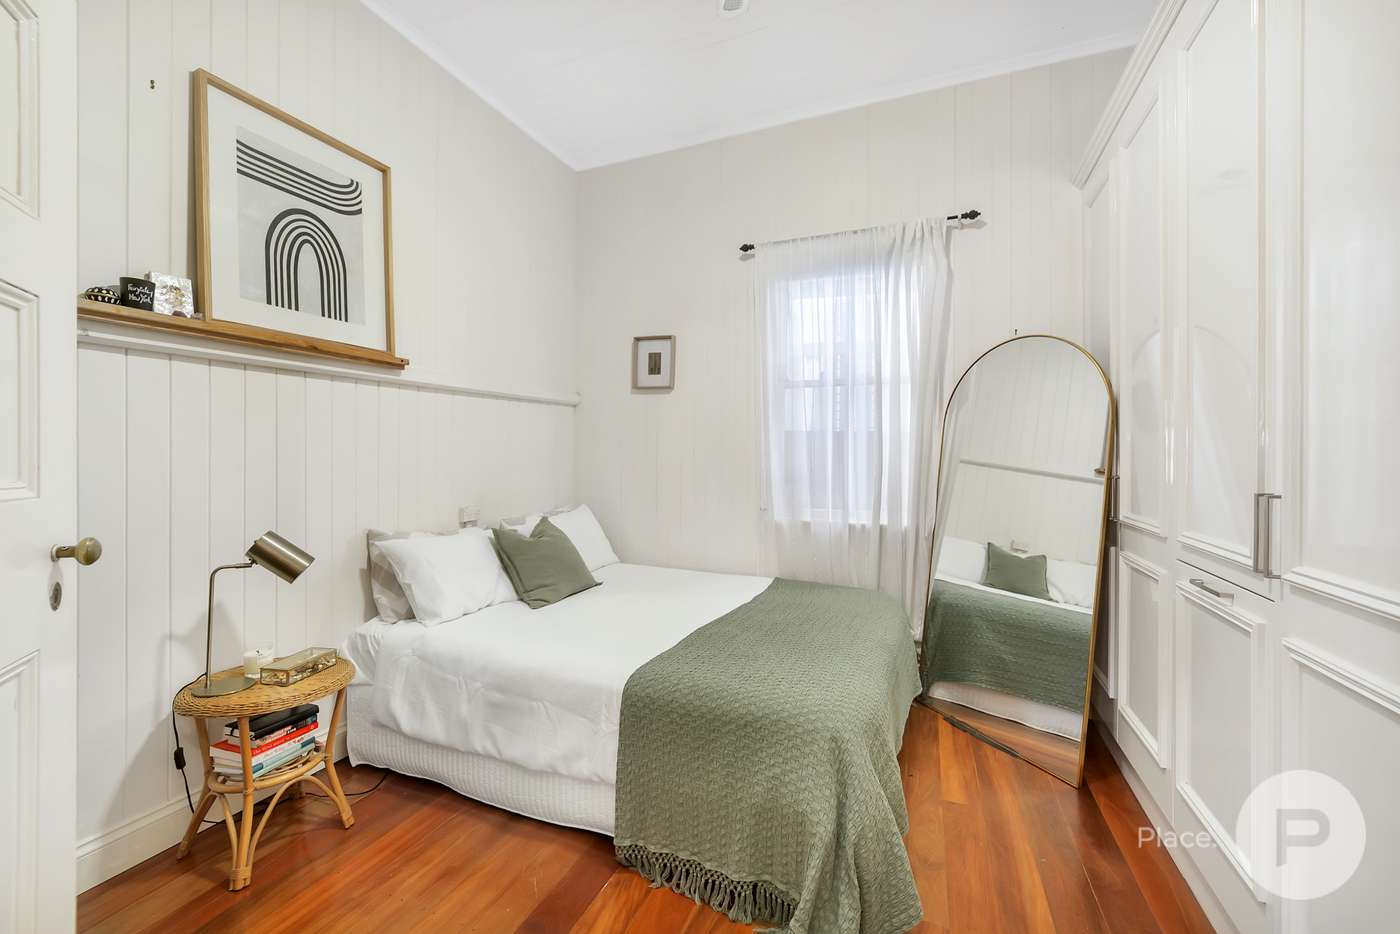 Sixth view of Homely house listing, 46 Zig Zag Street, Red Hill QLD 4059